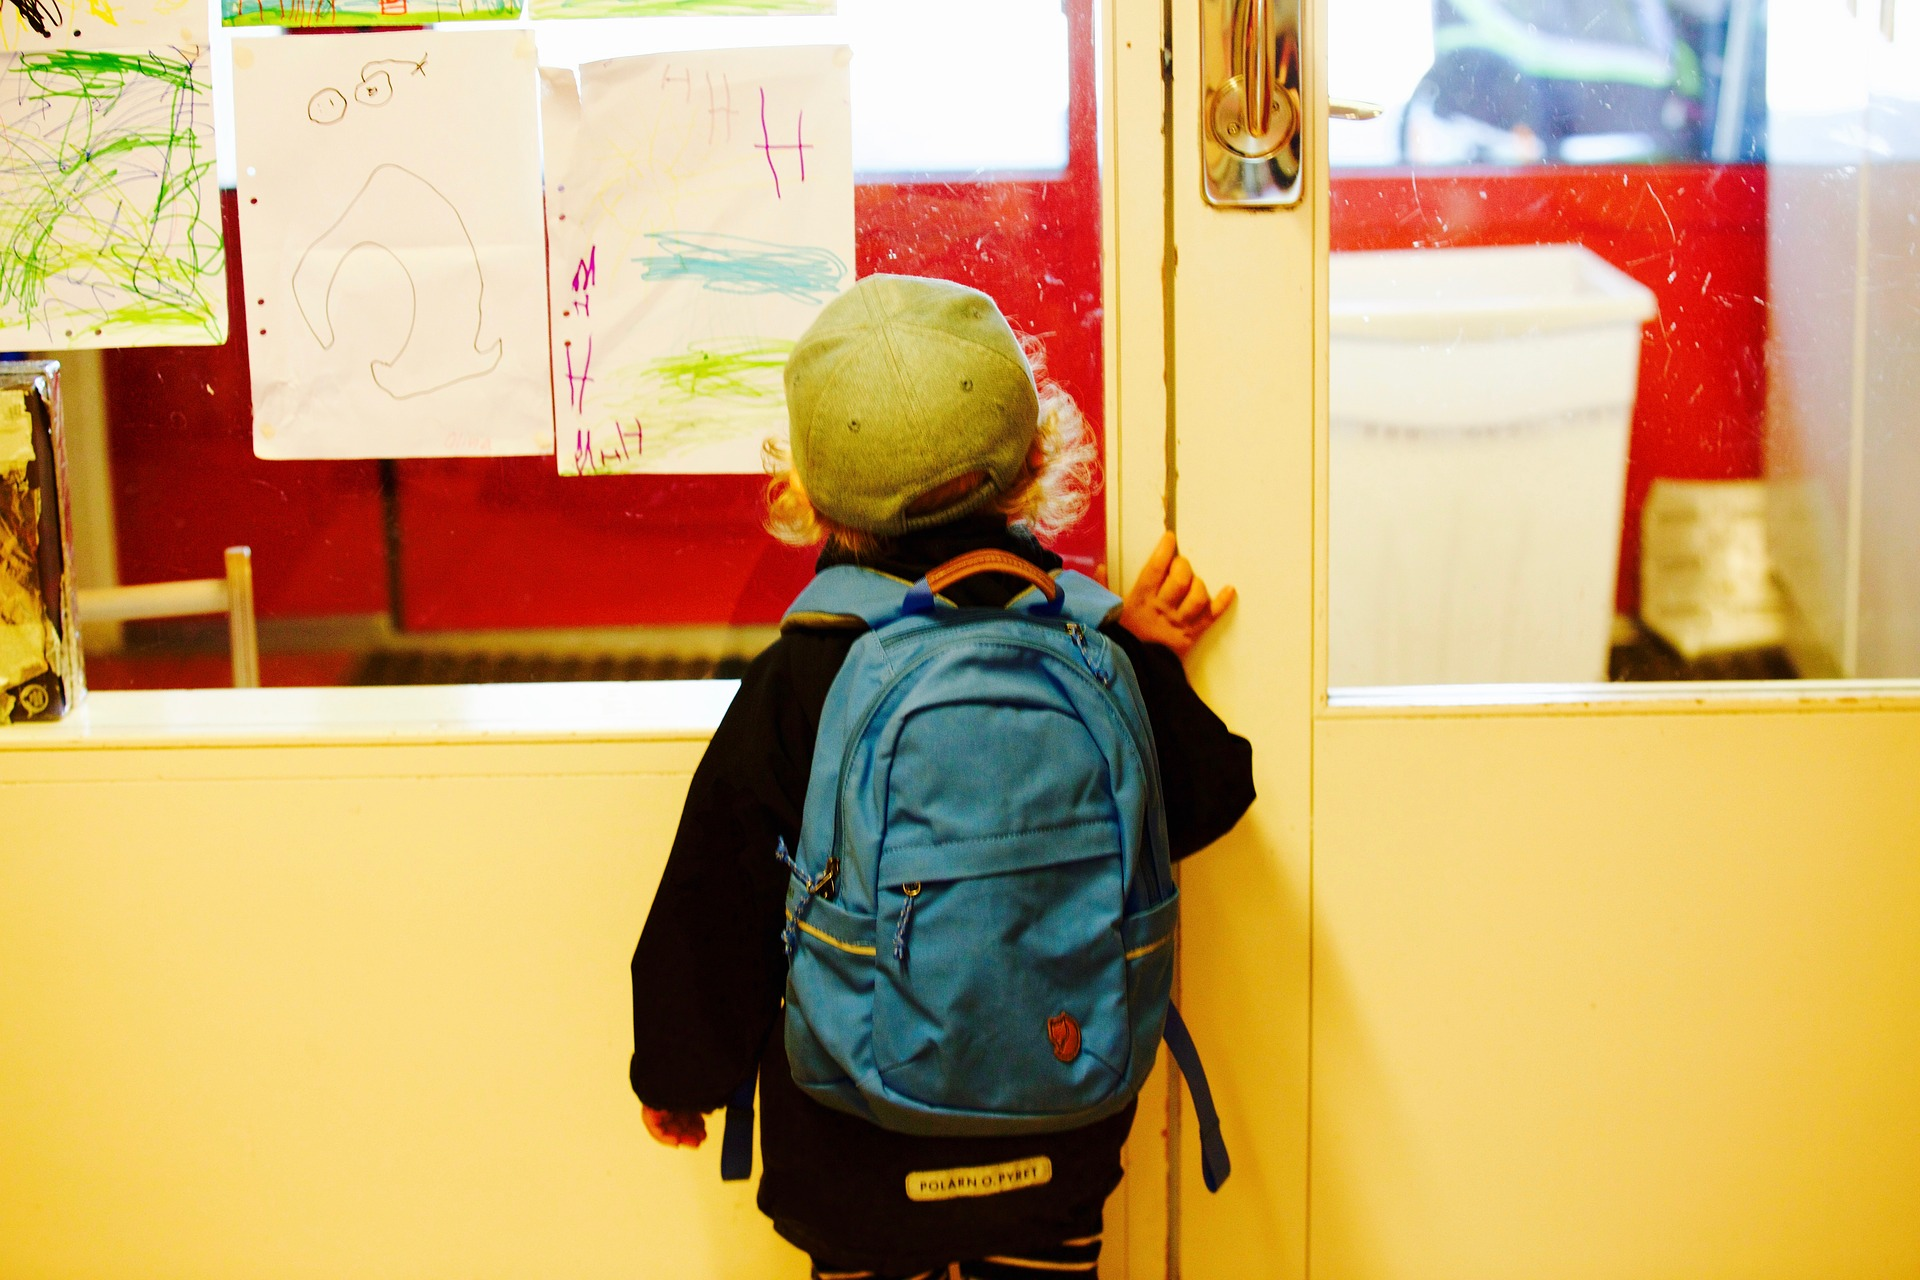 entry-to-school-2454153_1920